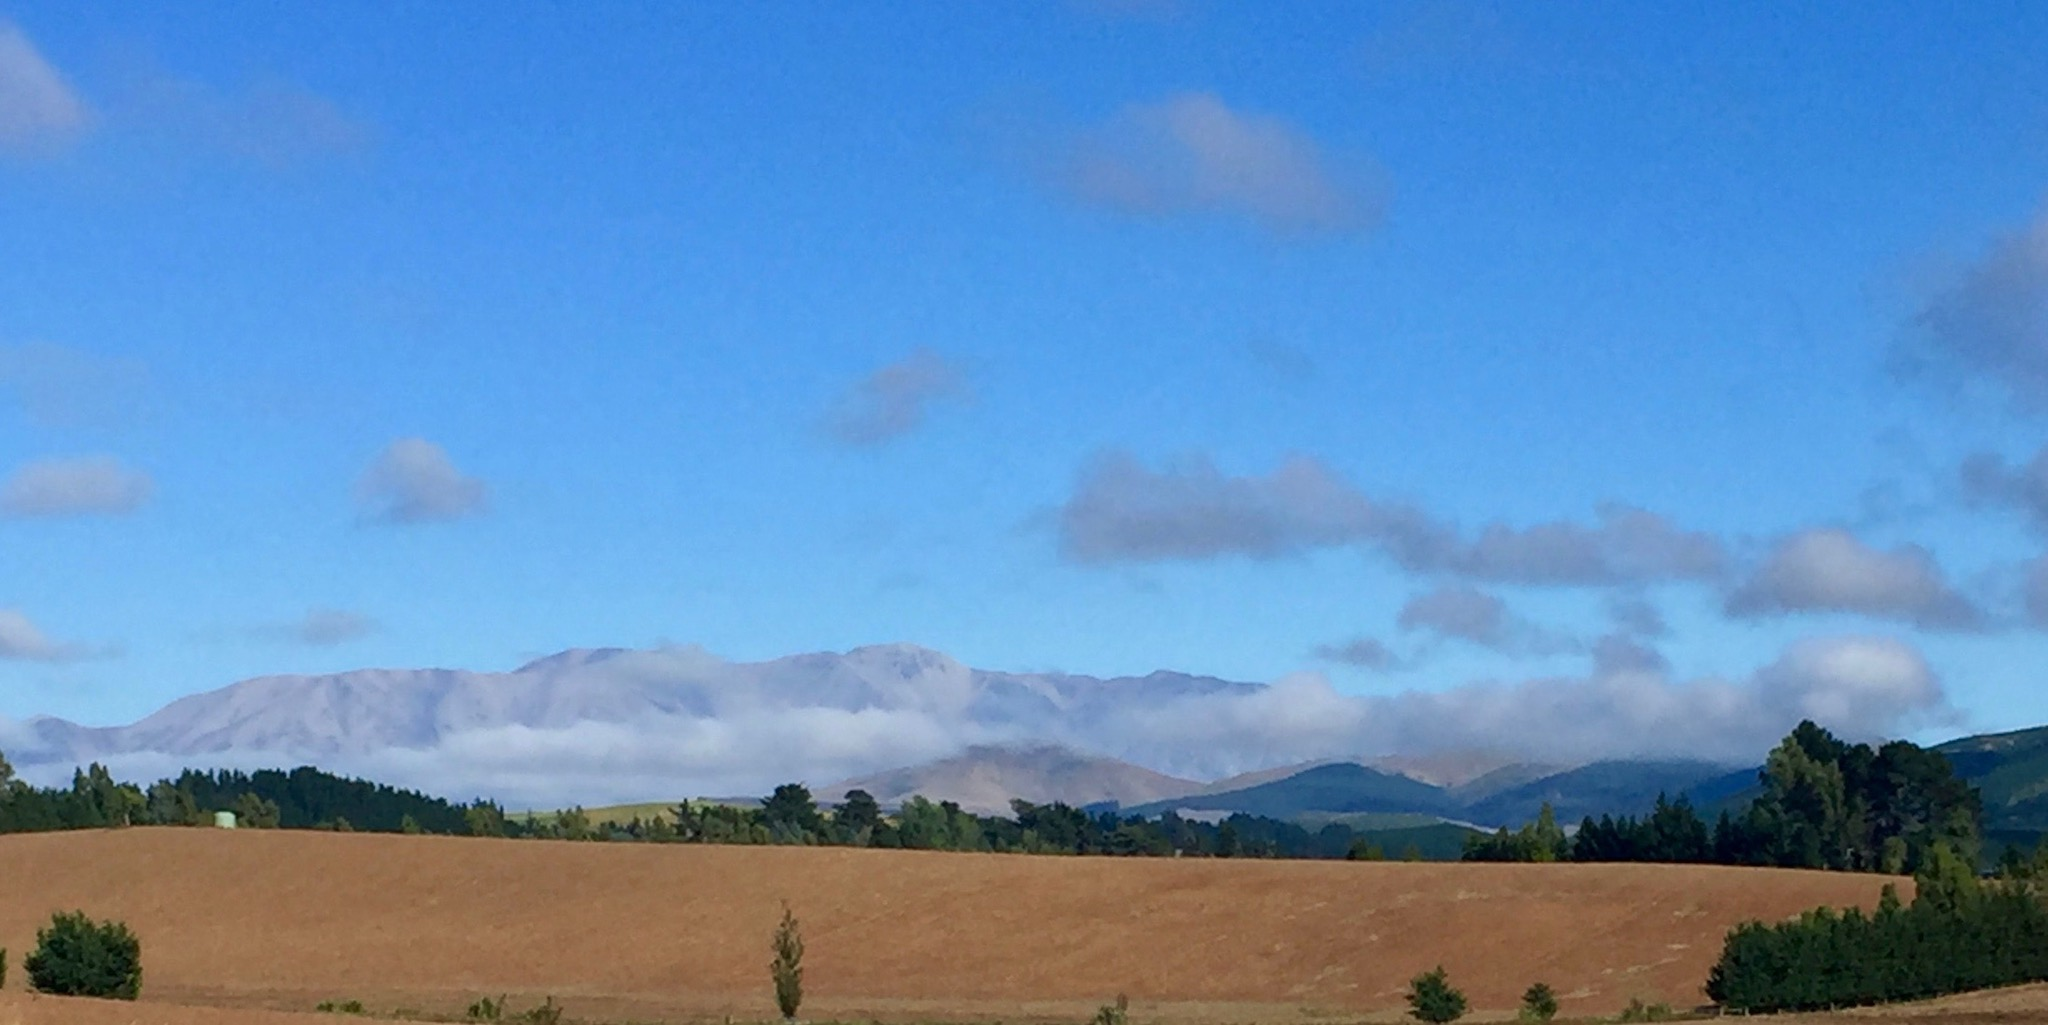 As the clouds lifted we could see the mountains.